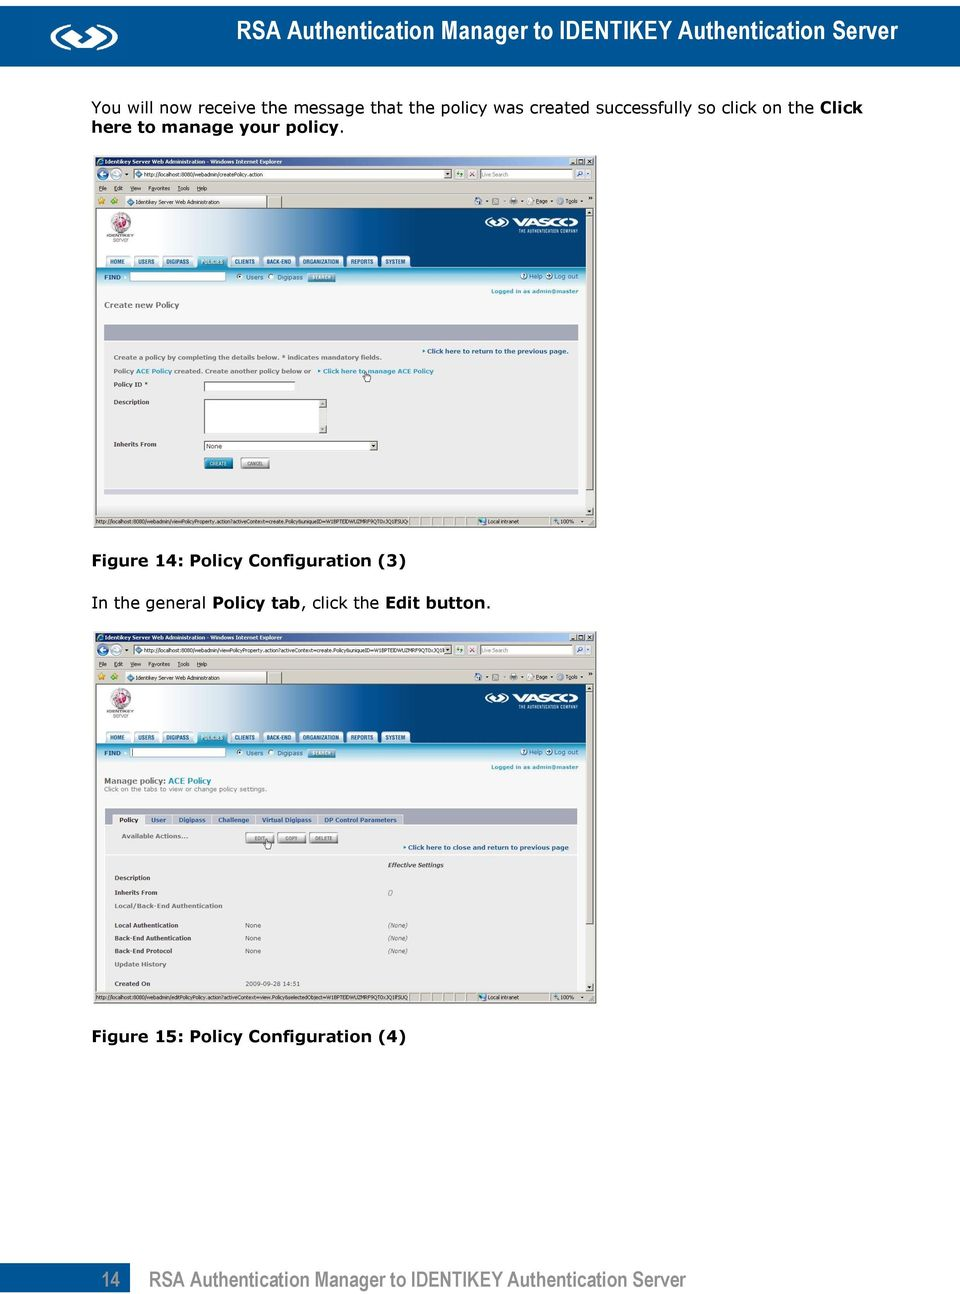 Figure 14: Policy Configuration (3) In the general Policy tab, click the Edit